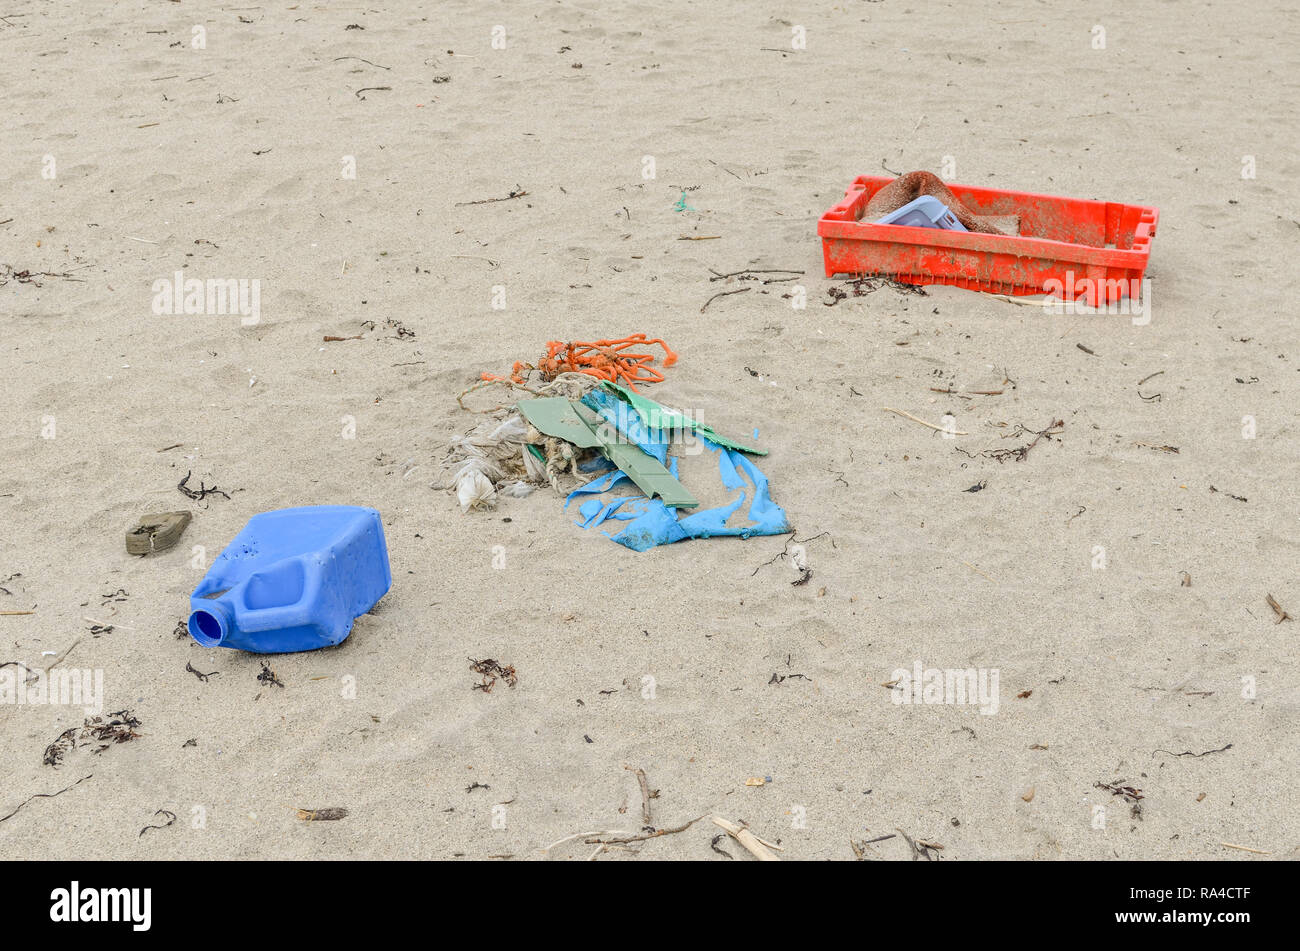 Variety of plastic pollution washed up on Perranporth Beach, North Cornwall. Metaphor plastic sea pollution, environmental pollution, war on plastic. - Stock Image